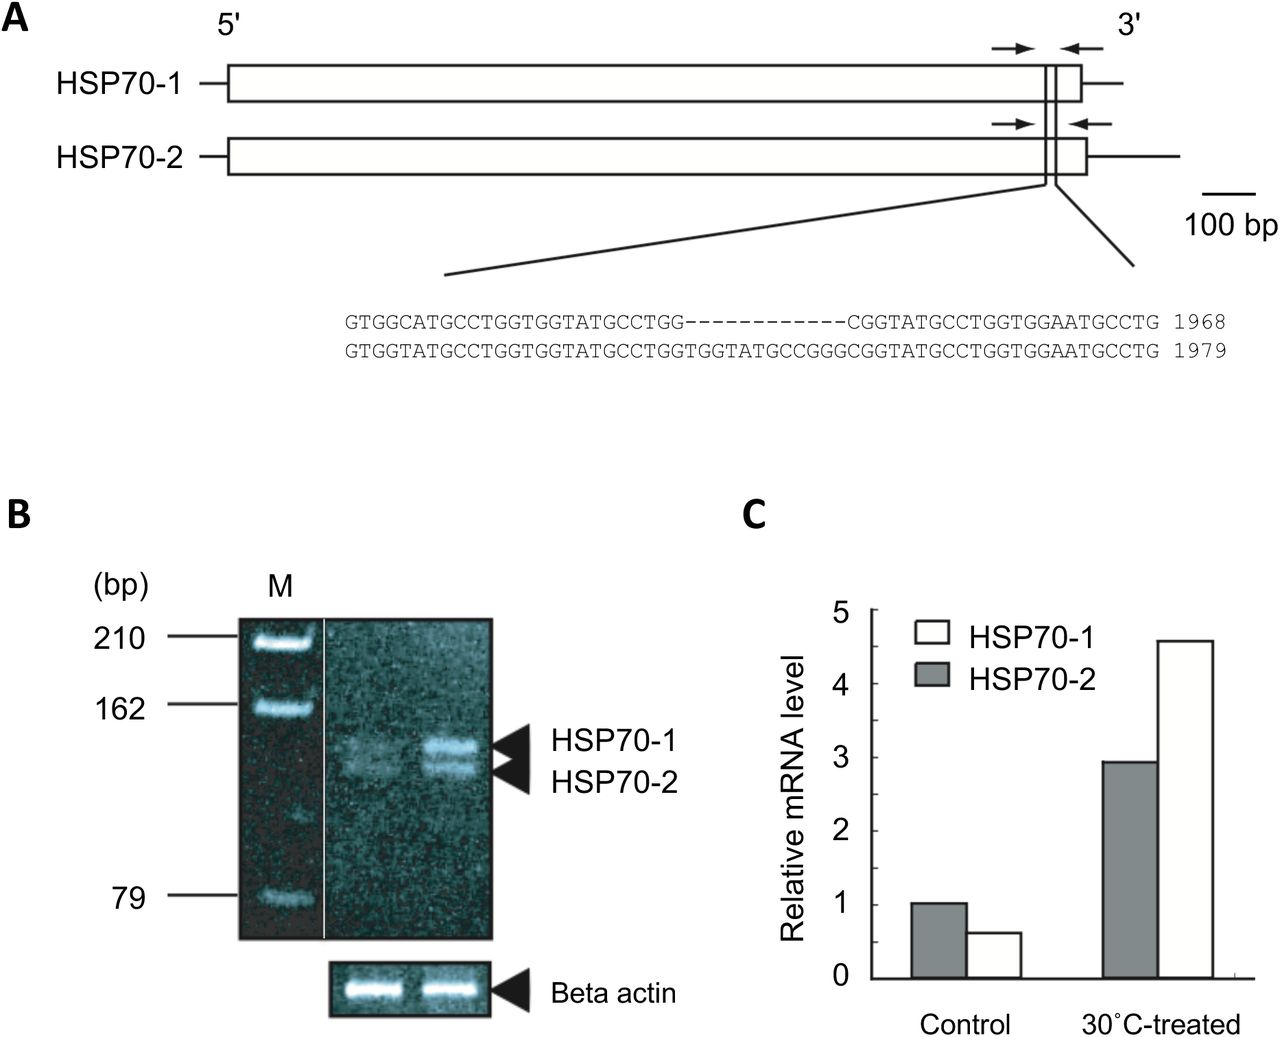 Semi-quantitative reverse transcription-PCR B. plicatilis HSP70 genes. A representative result is shown out of three independent experiments. (A) Location of primers rHSP70_gapF and rHSP70_gapR that amplify cDNA fragment of 112 and 124 bp from HSP70-1 and HSP70-2 cDNAs, respectively. (B) Polyacrylamide gel electrophoresis patterns of the RT-PCR product. Cycle numbers within a linear range of PCR amplification were determined to be 24 to 28 cycles for both cDNAs by preliminary experiments on the basis of signal intensities of amplified products by RT-PCR. (C) Signal intensities of HSP70-1 and HSP70-2 genes standardized to those of β-actin.